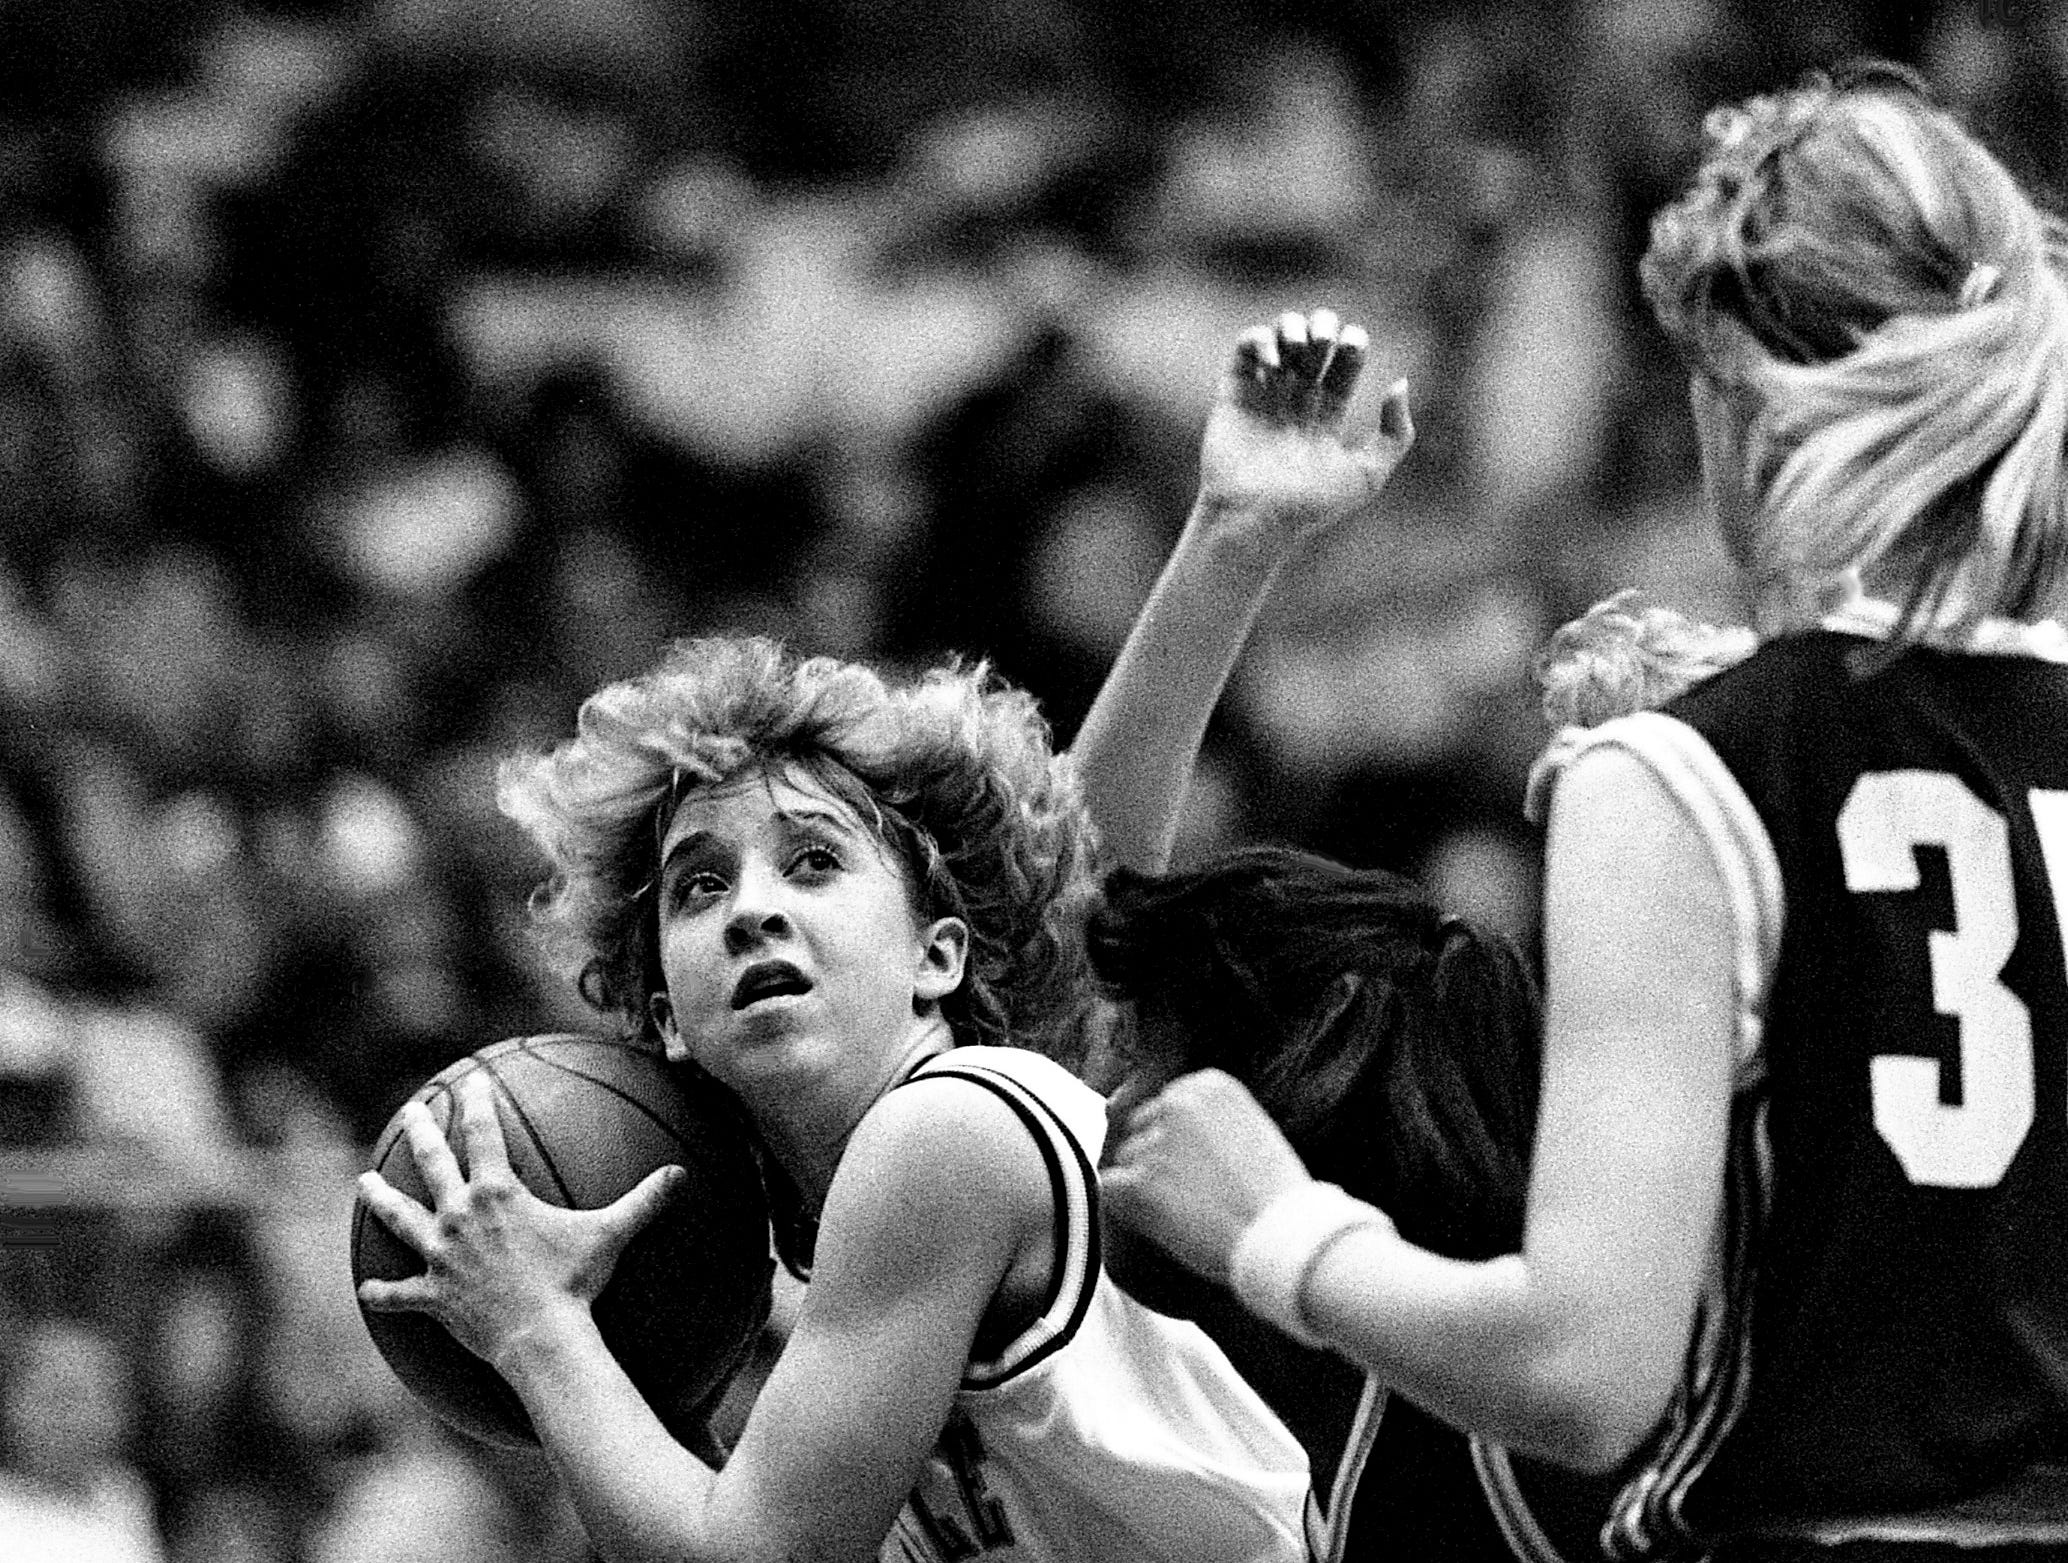 Shelbyville High's Sherry Batten, left, looks for a shot after grabbing an  offensive rebound during their 77-51 victory over Collierville High during the TSSAA Class AAA State tournament at MTSU's Murphy Center in Murfreesboro on March 9, 1989.